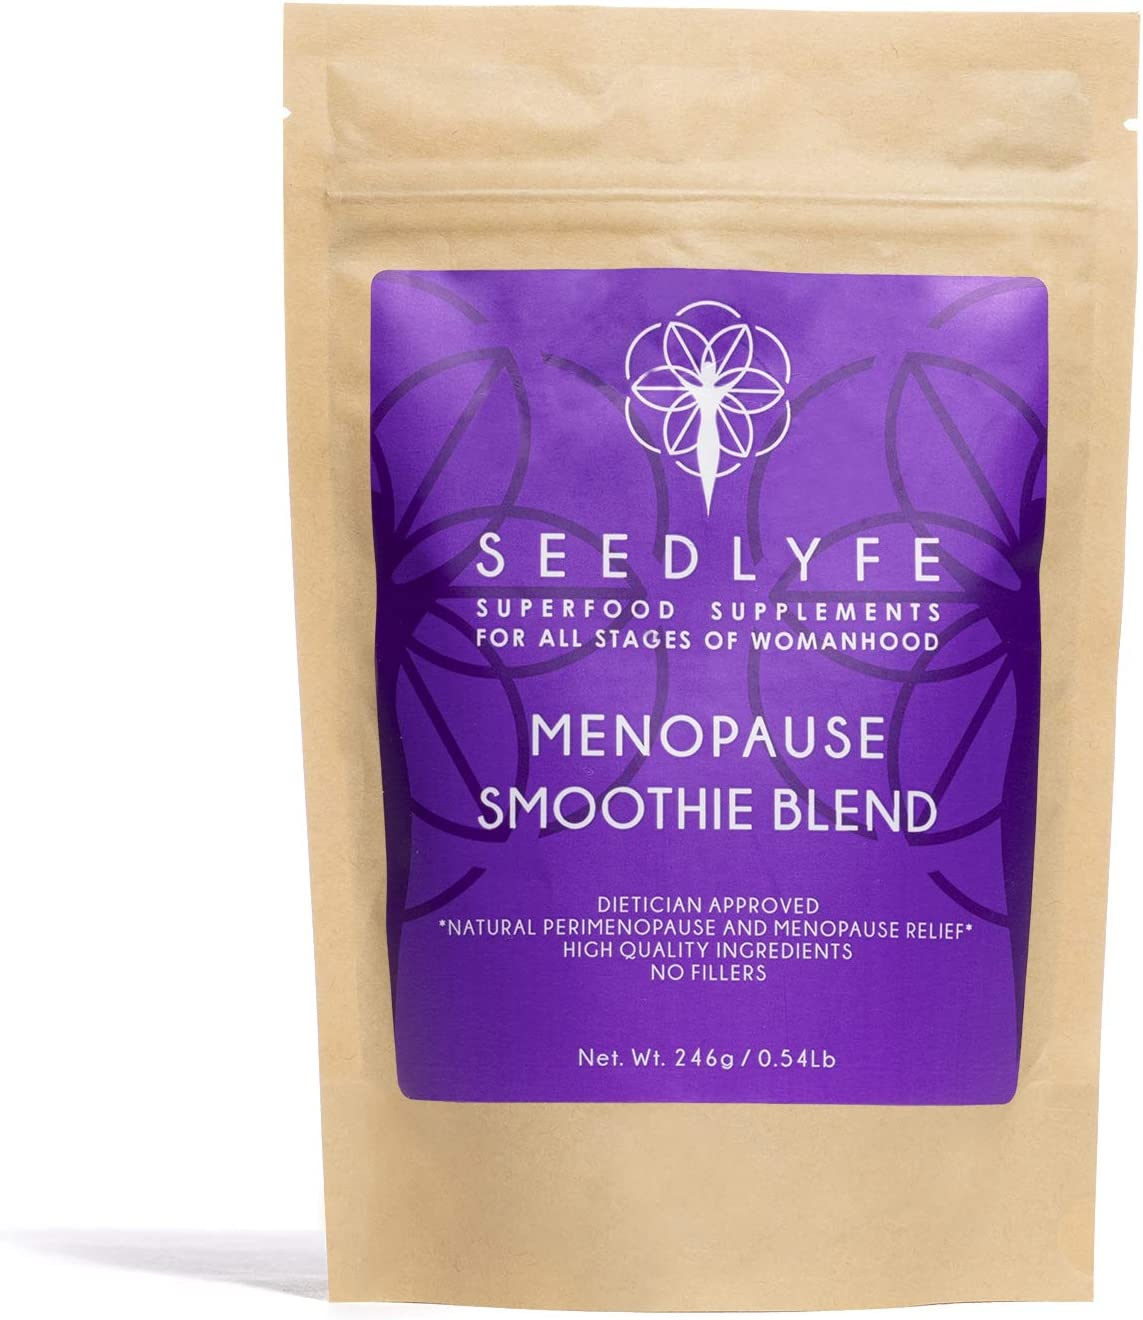 Seedlyfe Menopause Supplement for Women Superfood Powder - Dietician Approved Multi Symptom Relief: Hot Flashes, Night Sweats, Weight Gain, Low Energy, Black Cohosh + 21 Superfoods, 30 Servings